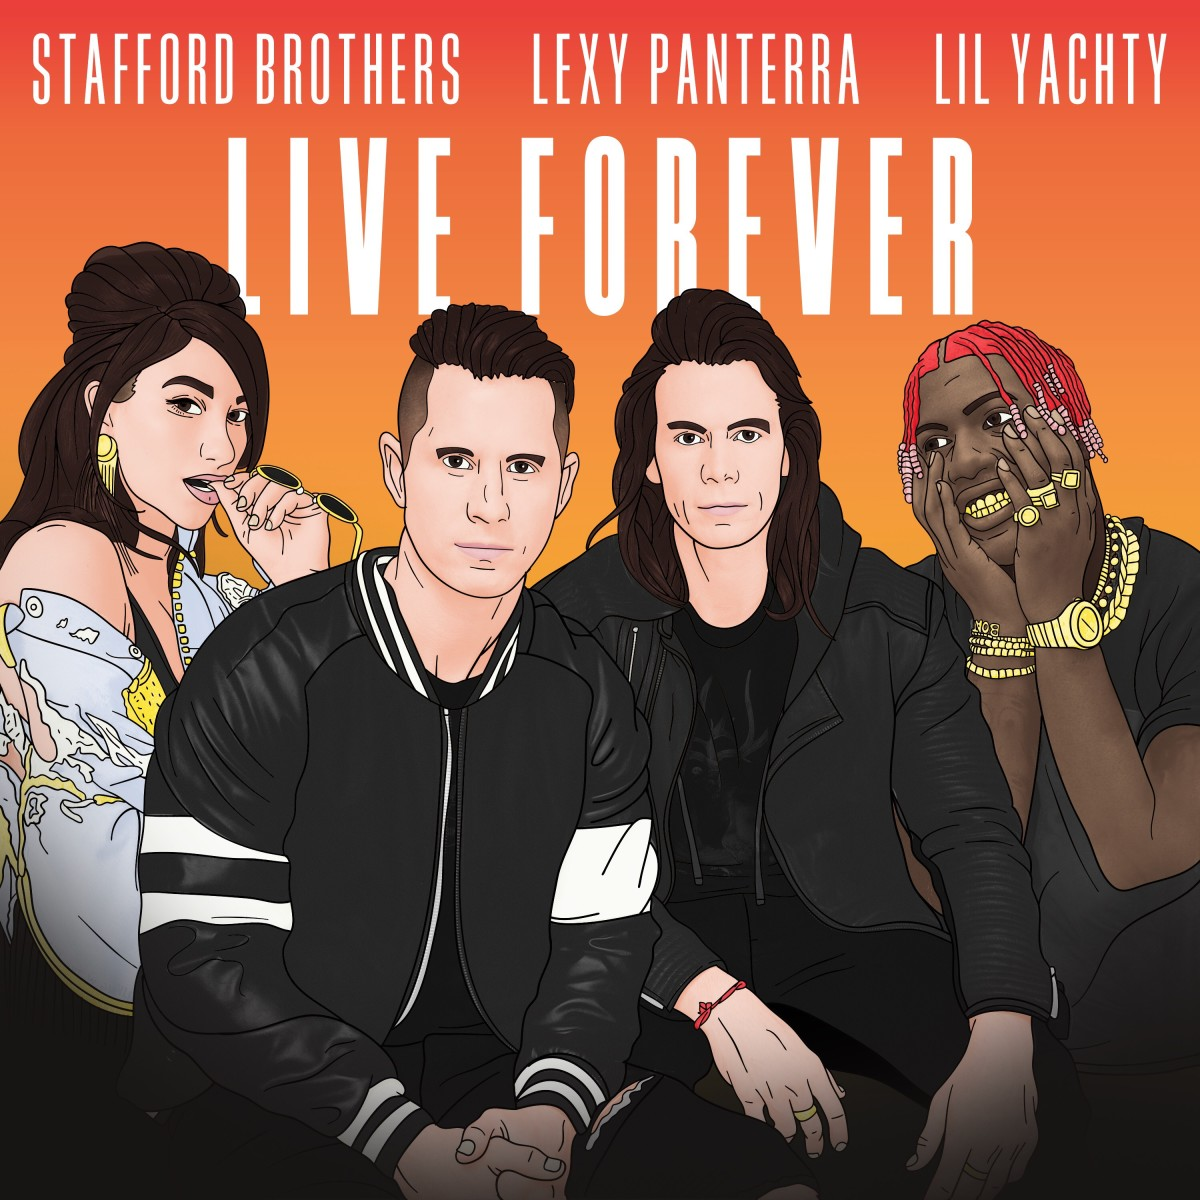 Stafford Brothers, Lexy Panterra, Lil Yachty - Live Forever